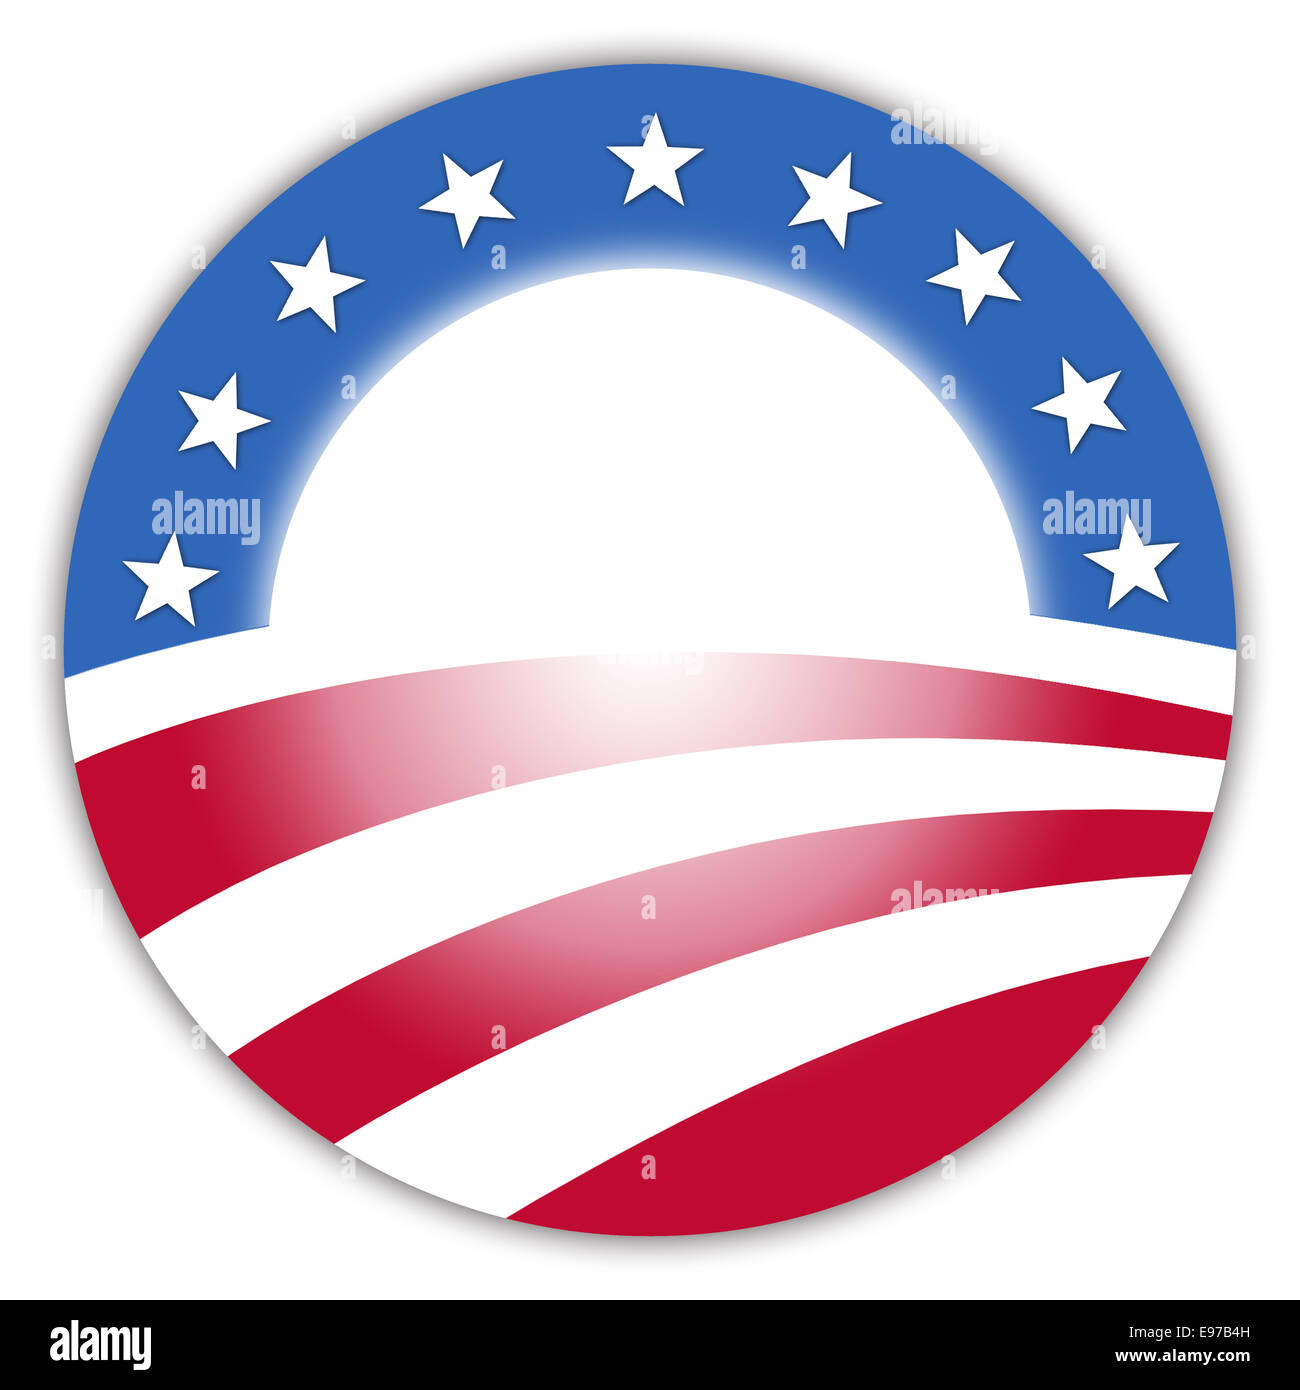 Obama Button - Stock Image